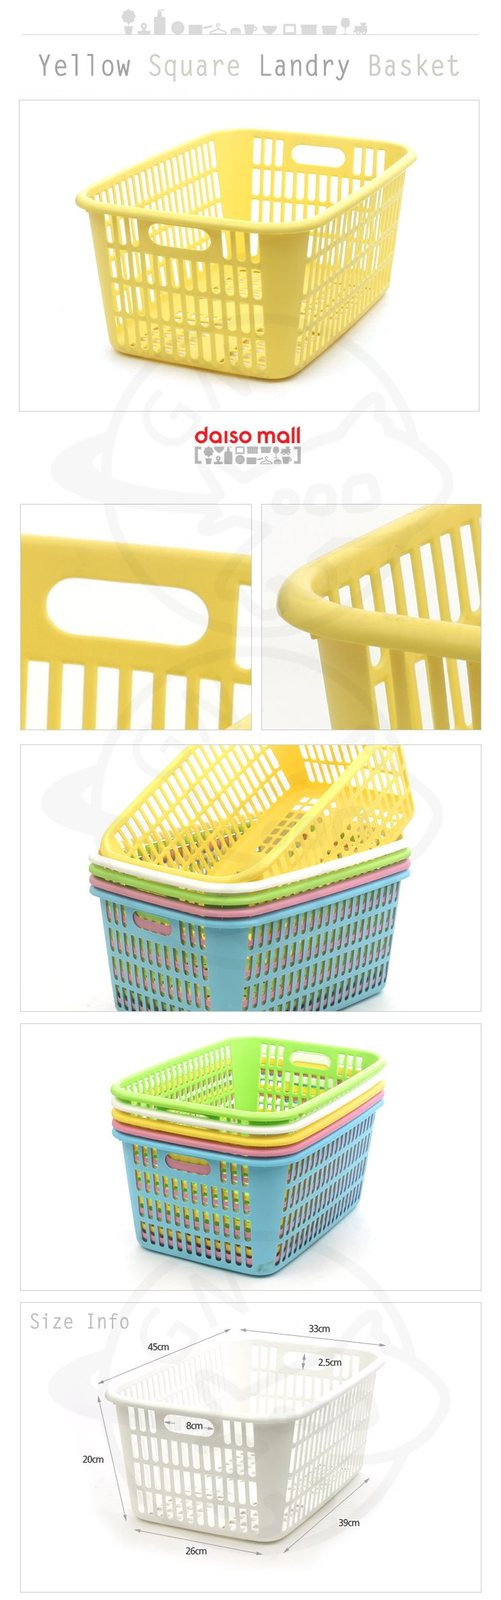 DAISO [DAISO MALL] Color square laundry basket (5 Colors)  M1301002   M1301003